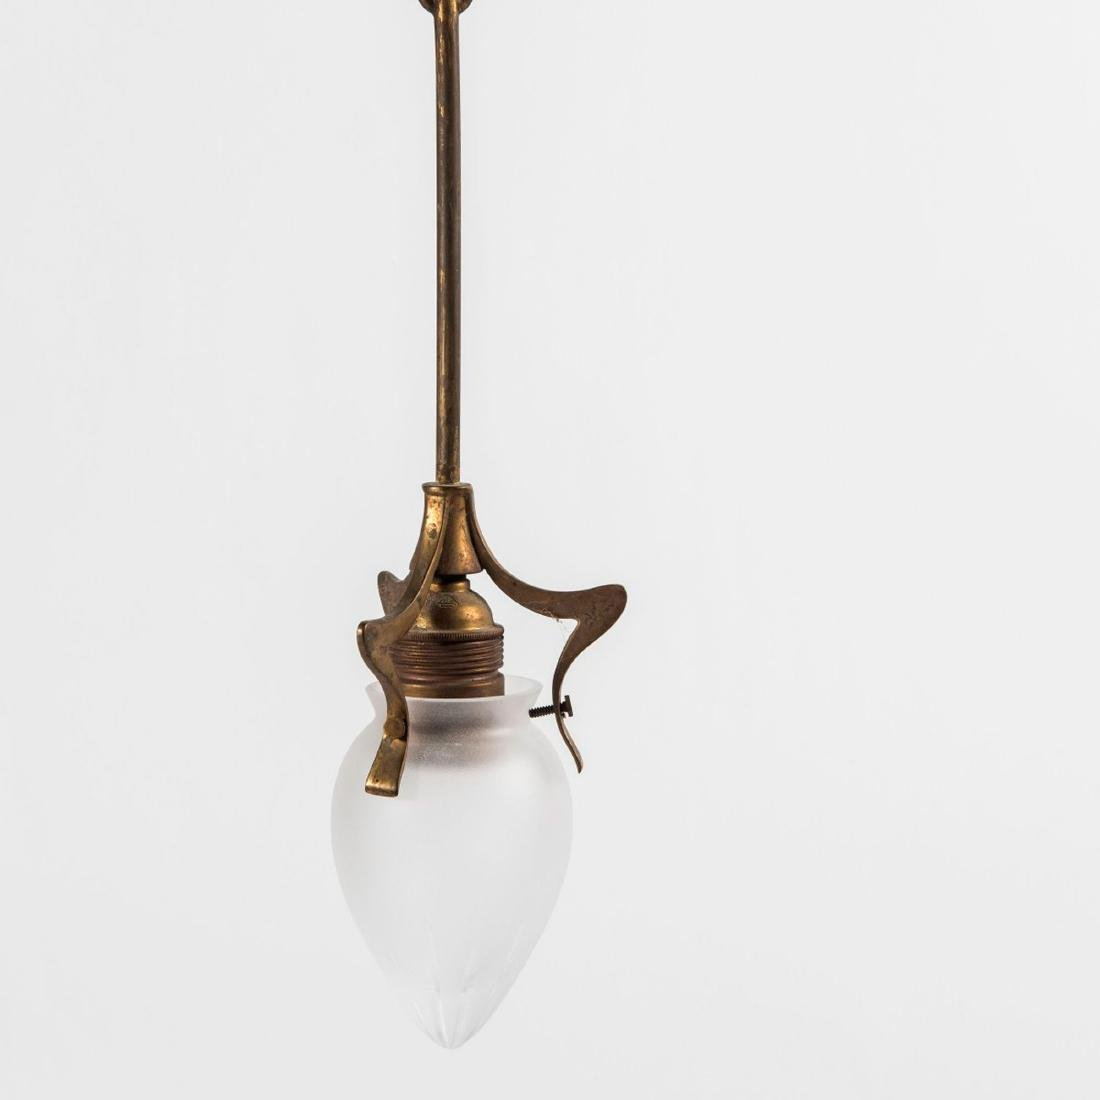 Ceiling light, c. 1910 - 5